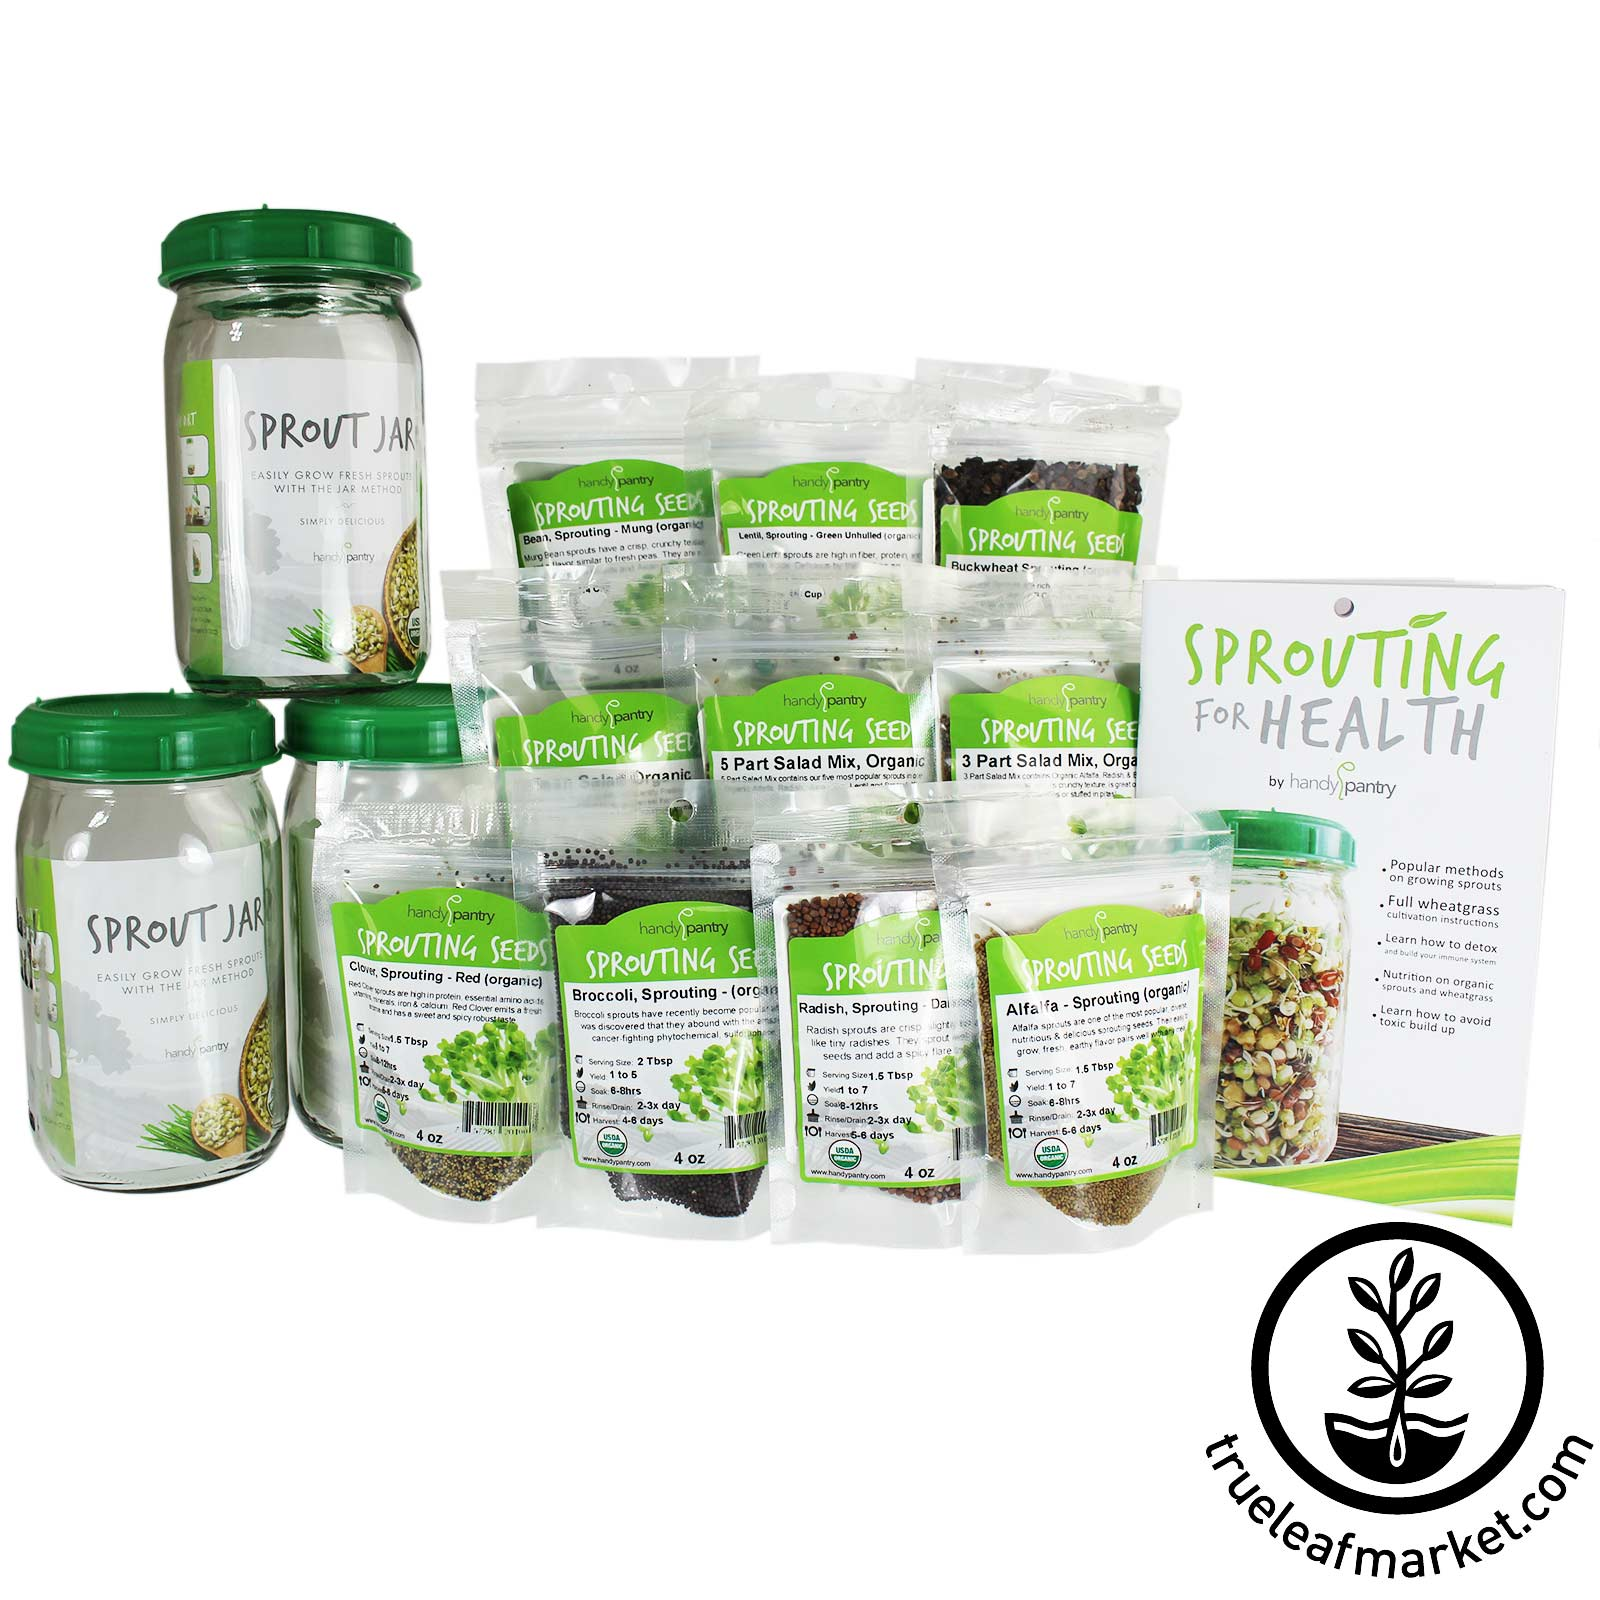 3 Jar Sprouting Kit